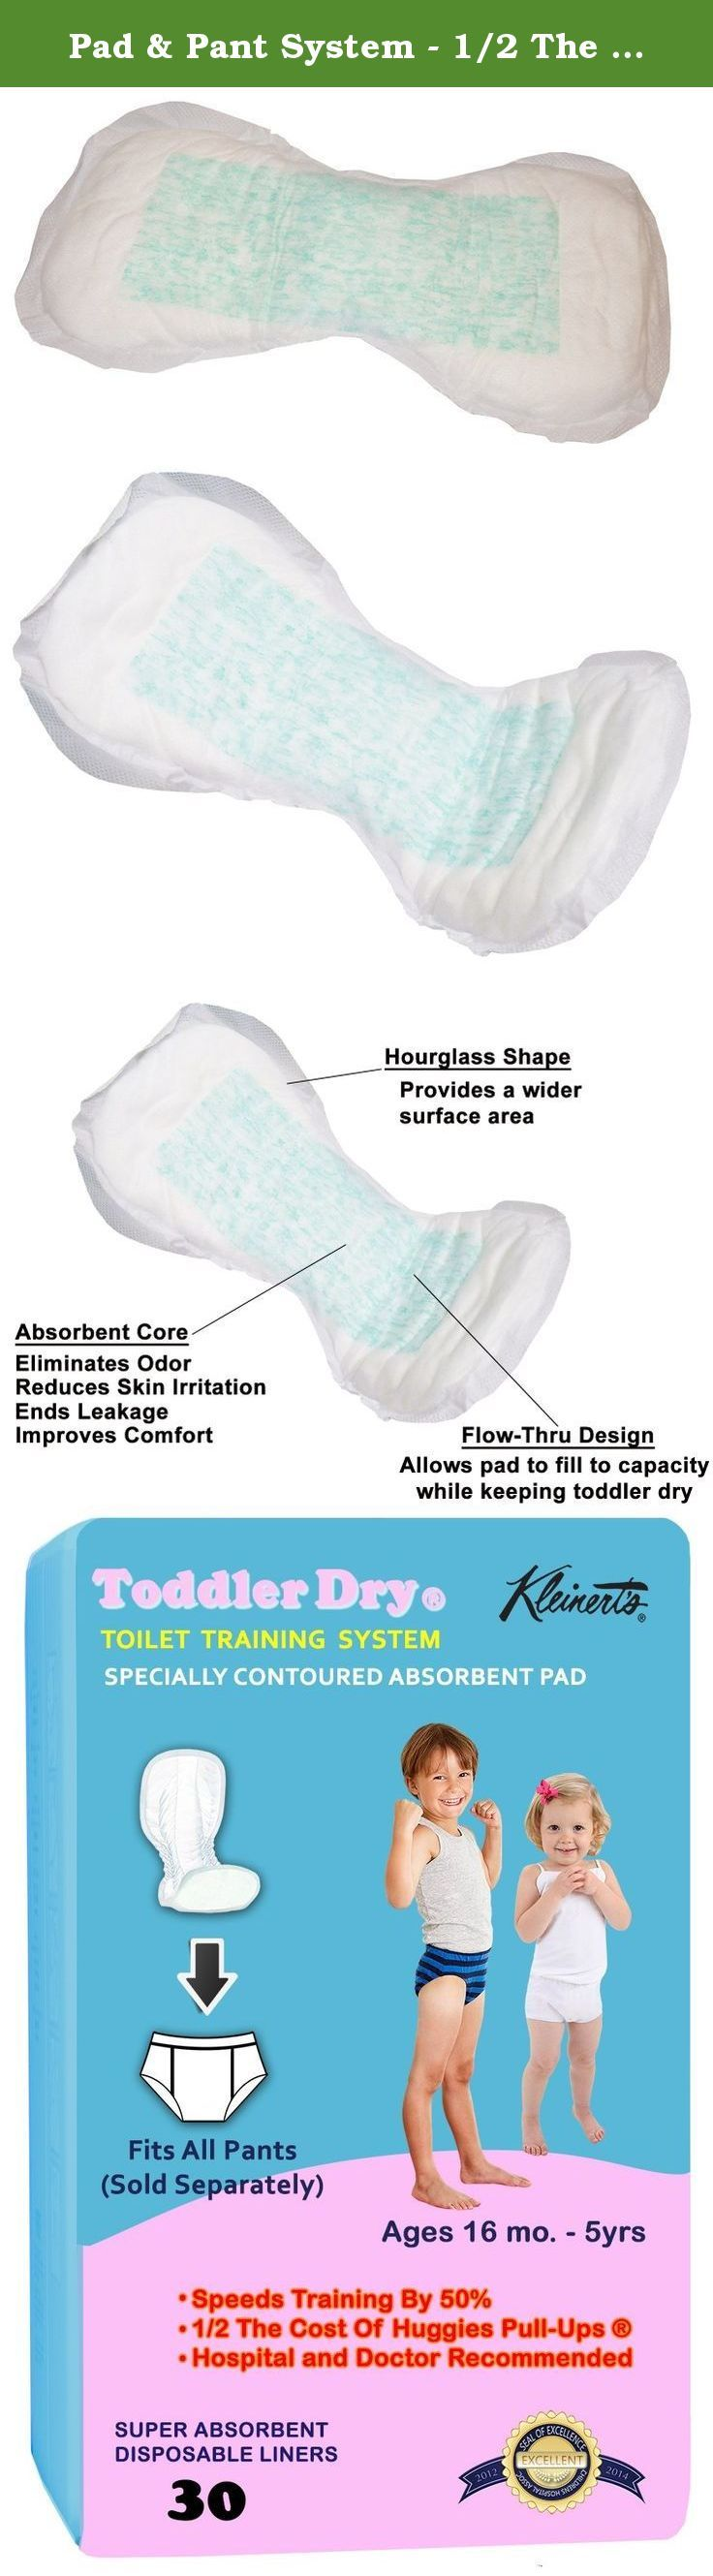 Pad & Pant System - 1/2 The Cost Of Pull-Ups. Toddler Dry Speeds Training By 50%. These super absorbent, disposable pads provide for speedier toilet training-in about half the time. They also cut costs about 50% of Huggies Pull Ups which simulate baby diapers so your child cannot discern the difference. These outstanding pads are individually wrapped for hygiene. They are doctor and hospital recommended. One Size Fits All. Color: White Works with all toddler underwear. The key to…